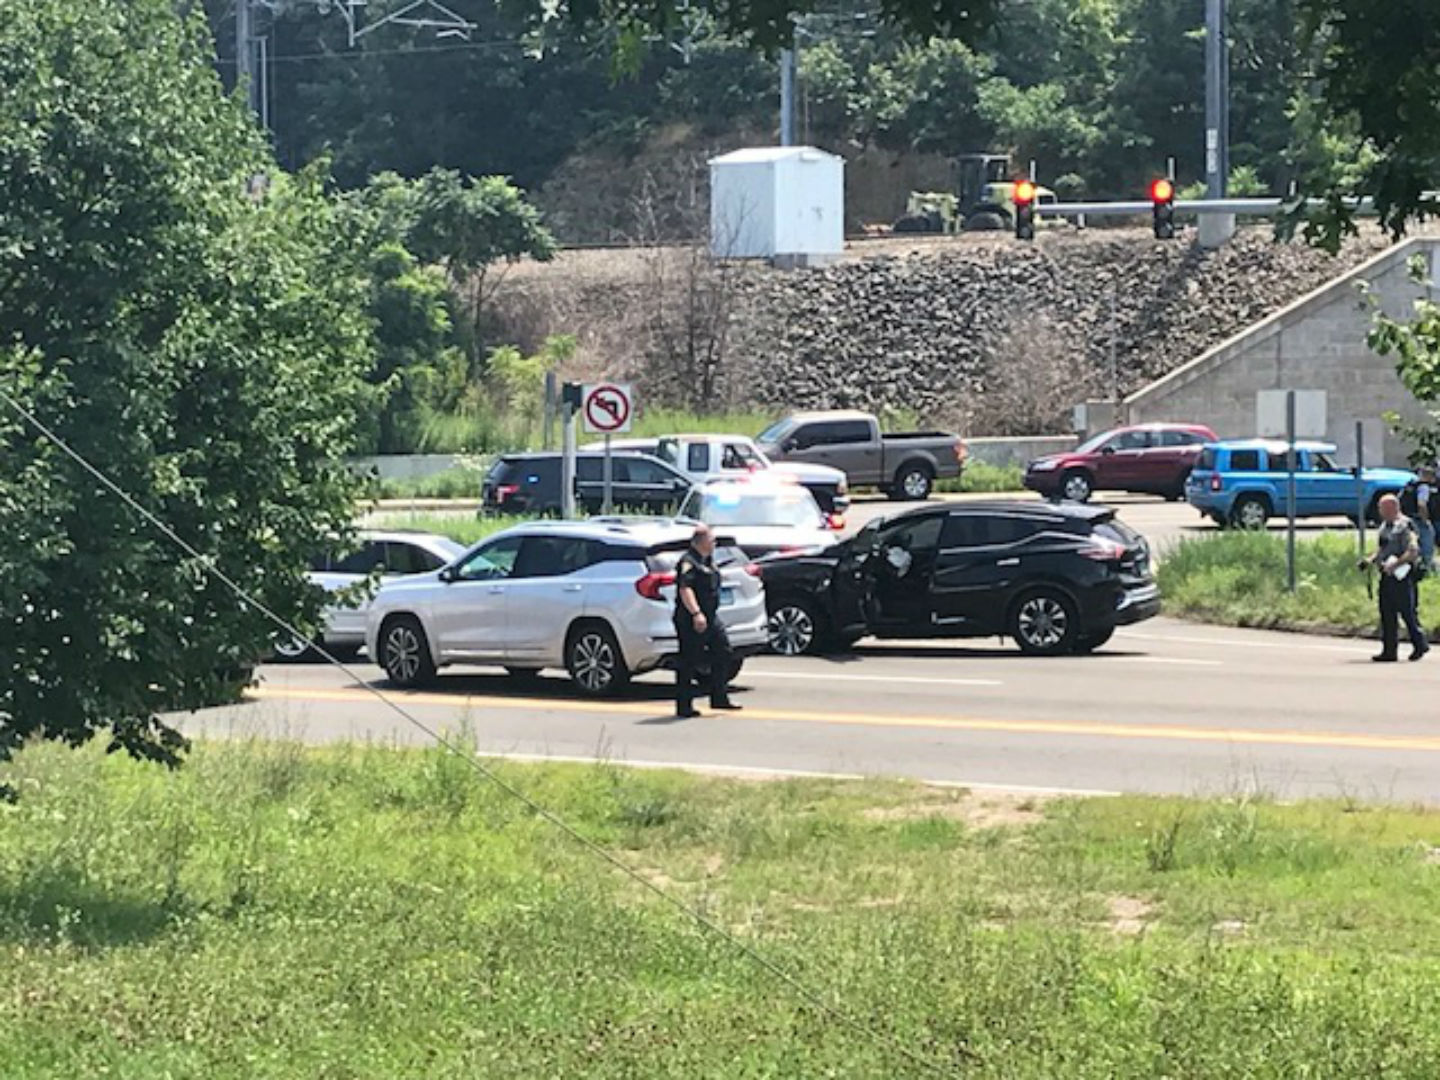 Two suspects in custody after police pursuit, crash in Branford